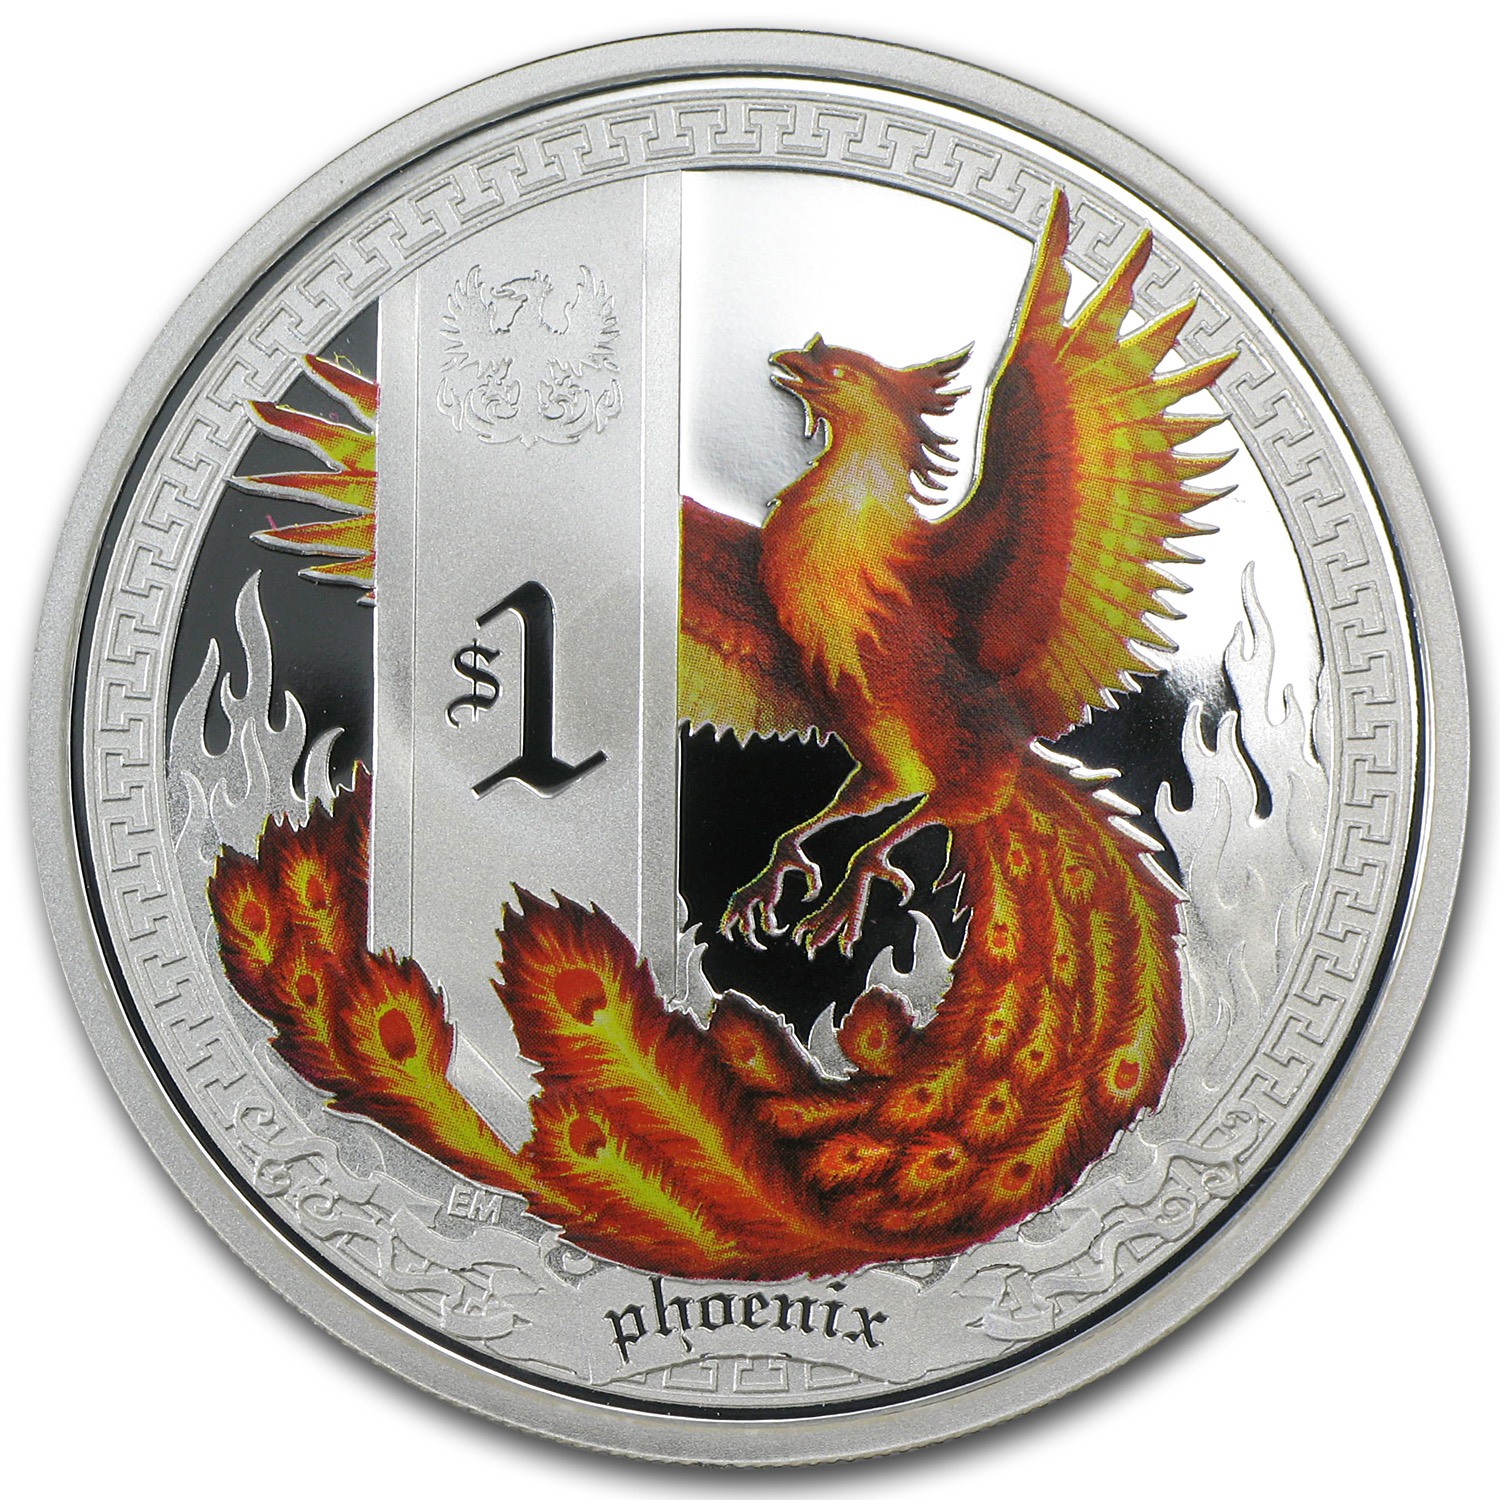 2013 1 oz Proof Silver Mythical Creatures - Phoenix